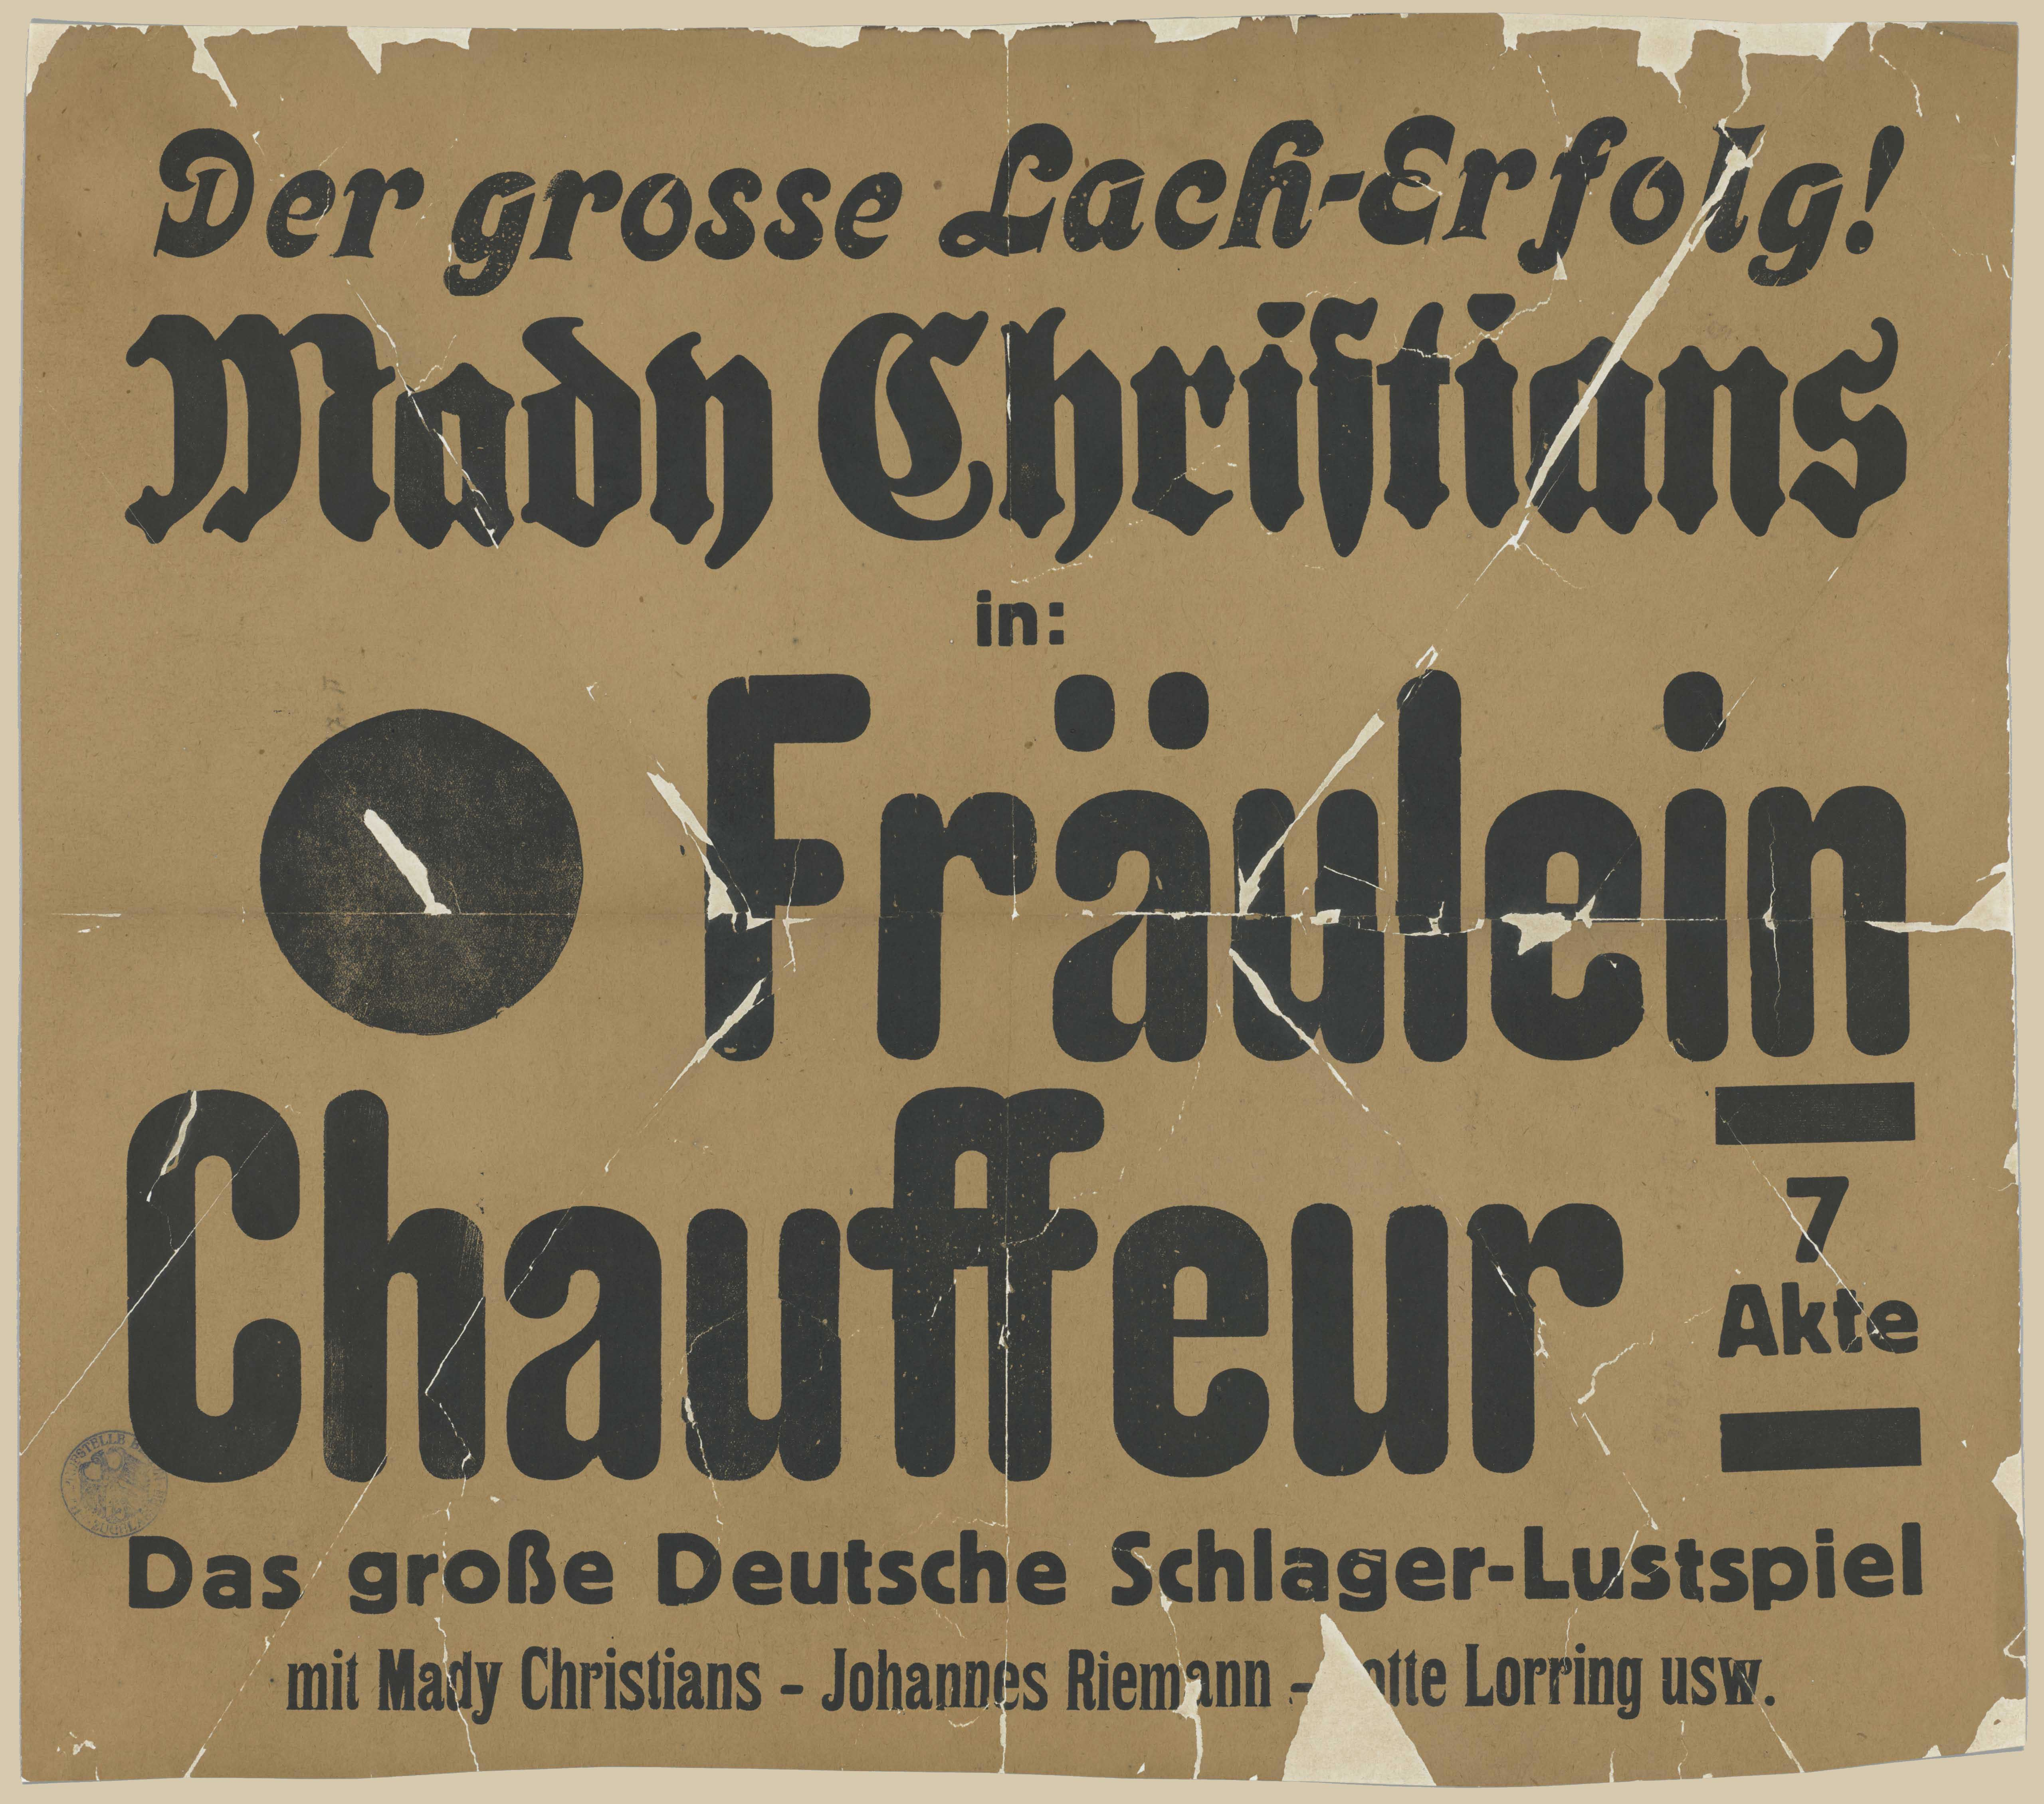 Film poster for Fräulein Chauffeur, Germany 1928